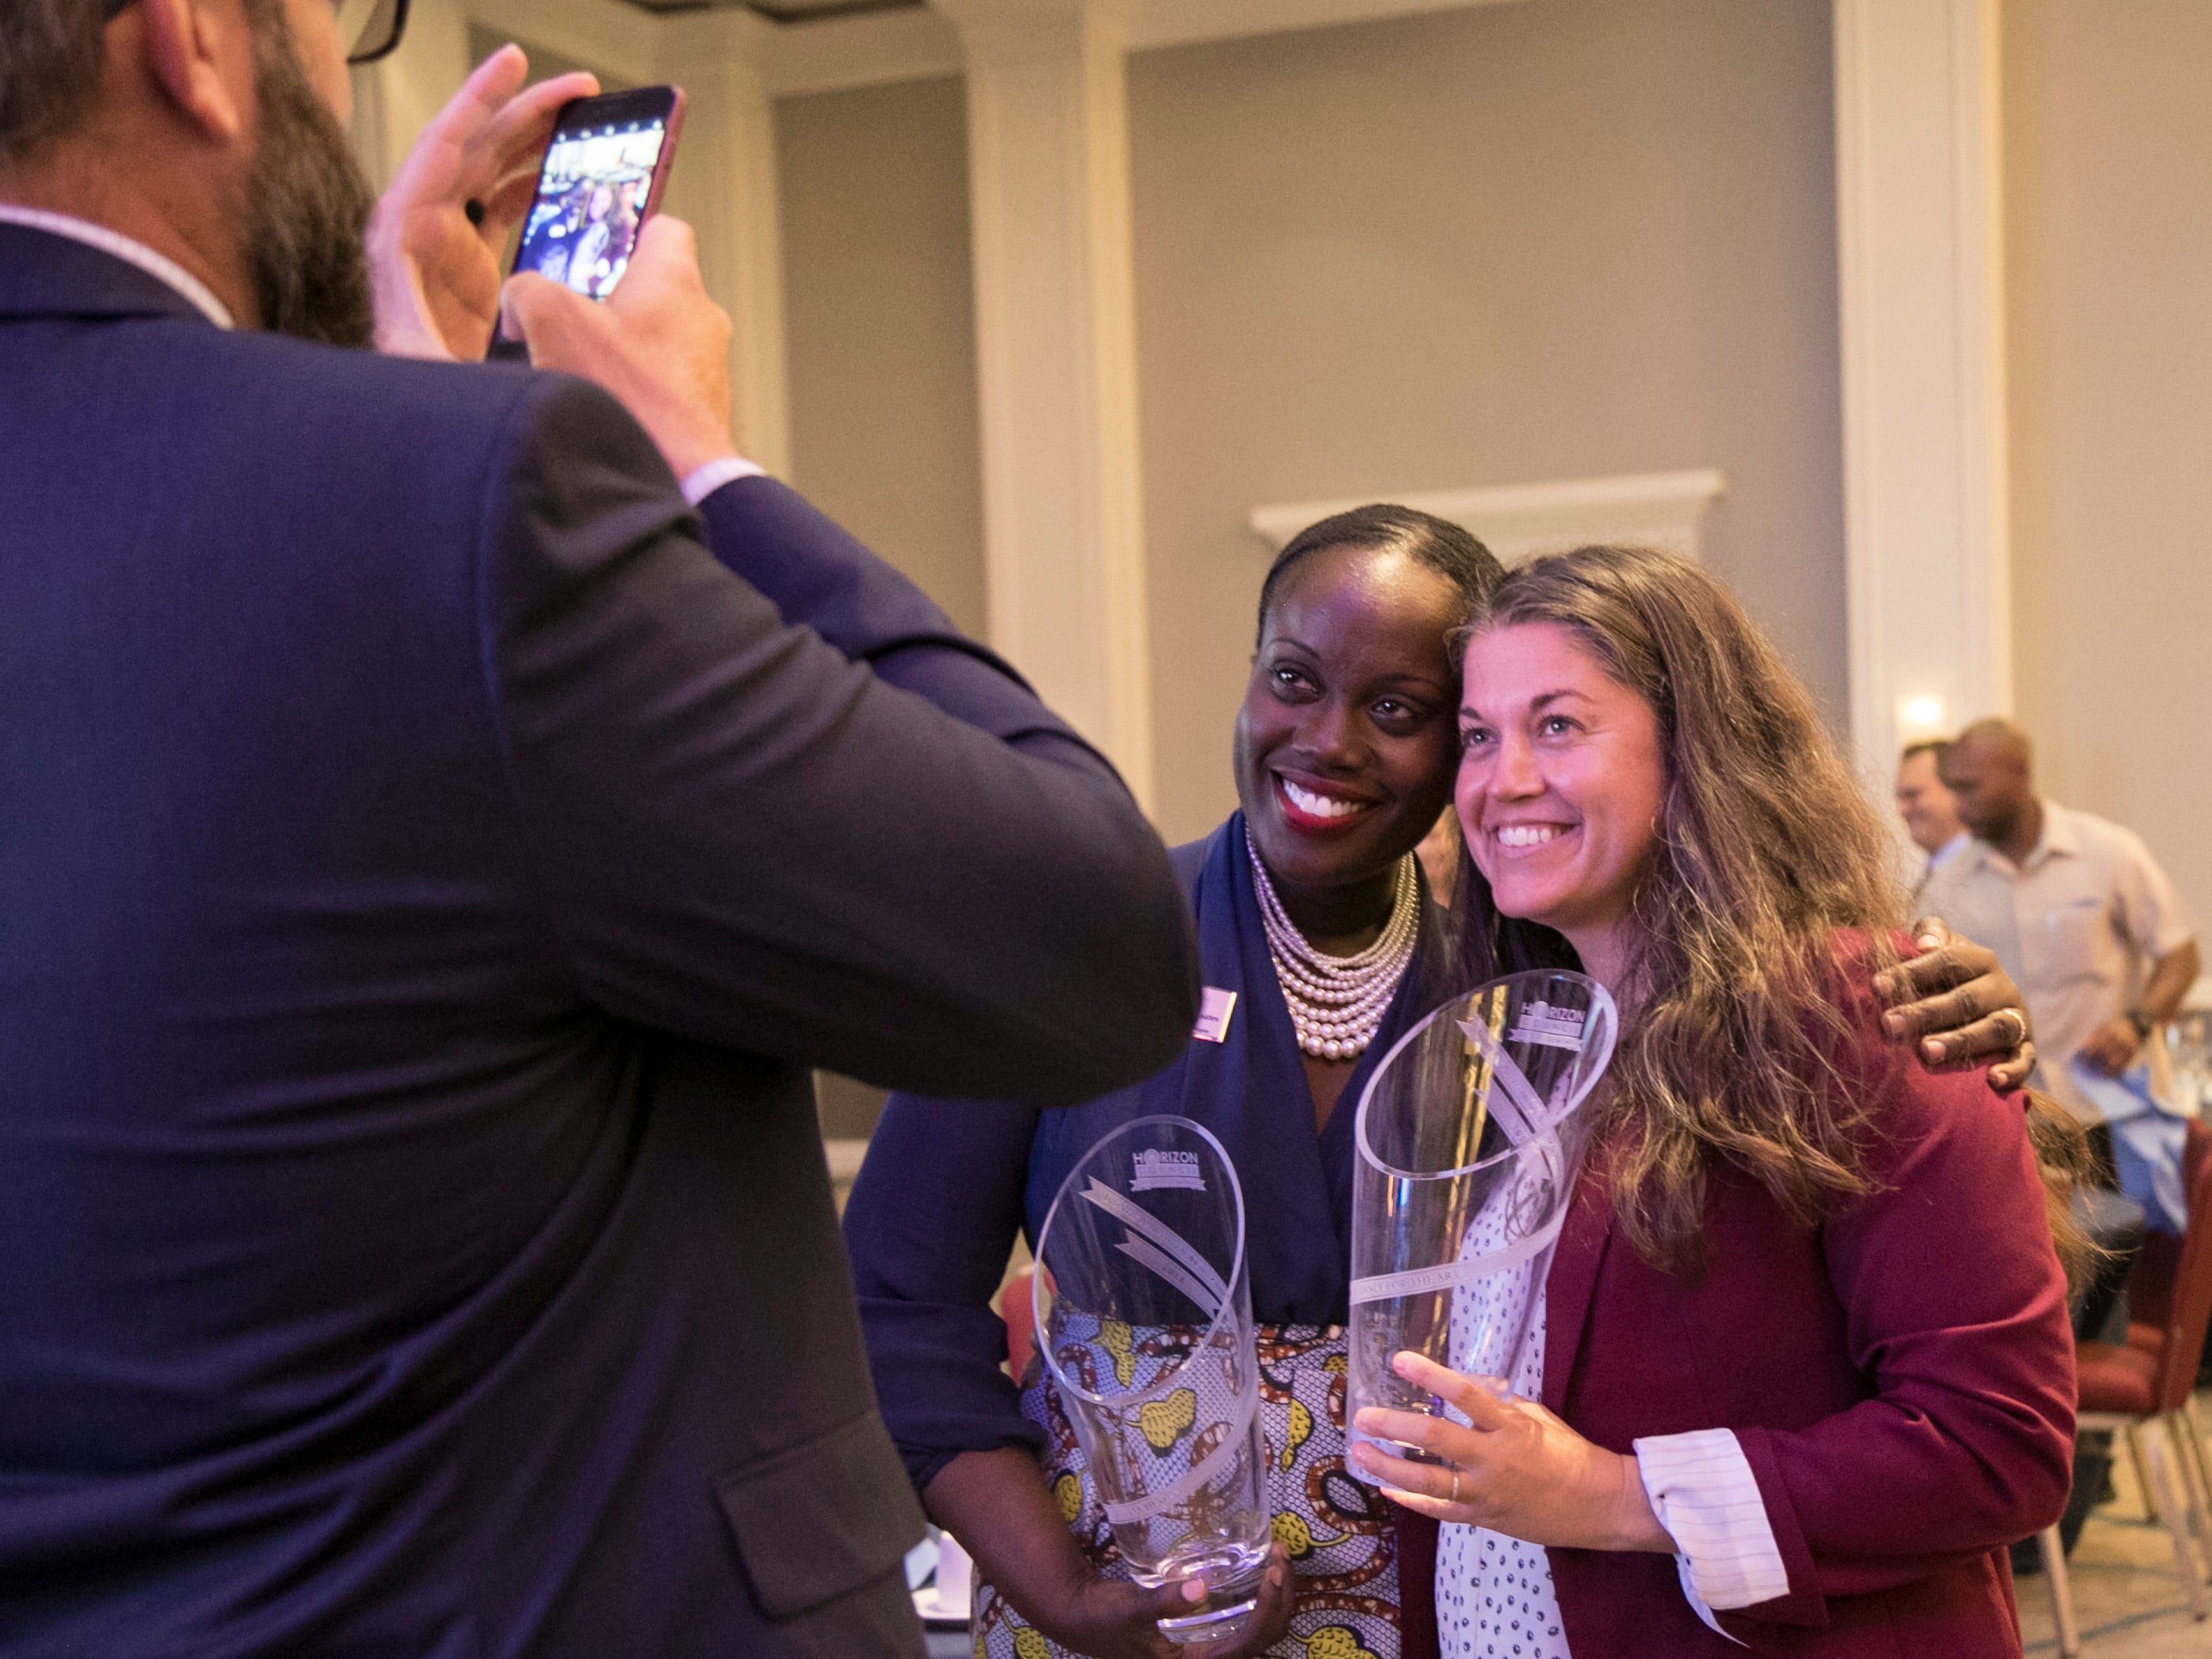 Yemisi Oloruntola-Coates, of Lee Health, left,  and Lydia Black, of the Alliance for the Arts, get a photo together after the 2018 Industry Appreciation Awards on Thursday at the Hyatt Regency Coconut Point Resort and Spa in Bonita Springs. Lee Health won the Diversity in Business Award, and the Alliance for the Arts won Nonprofit of the Year for the small category.